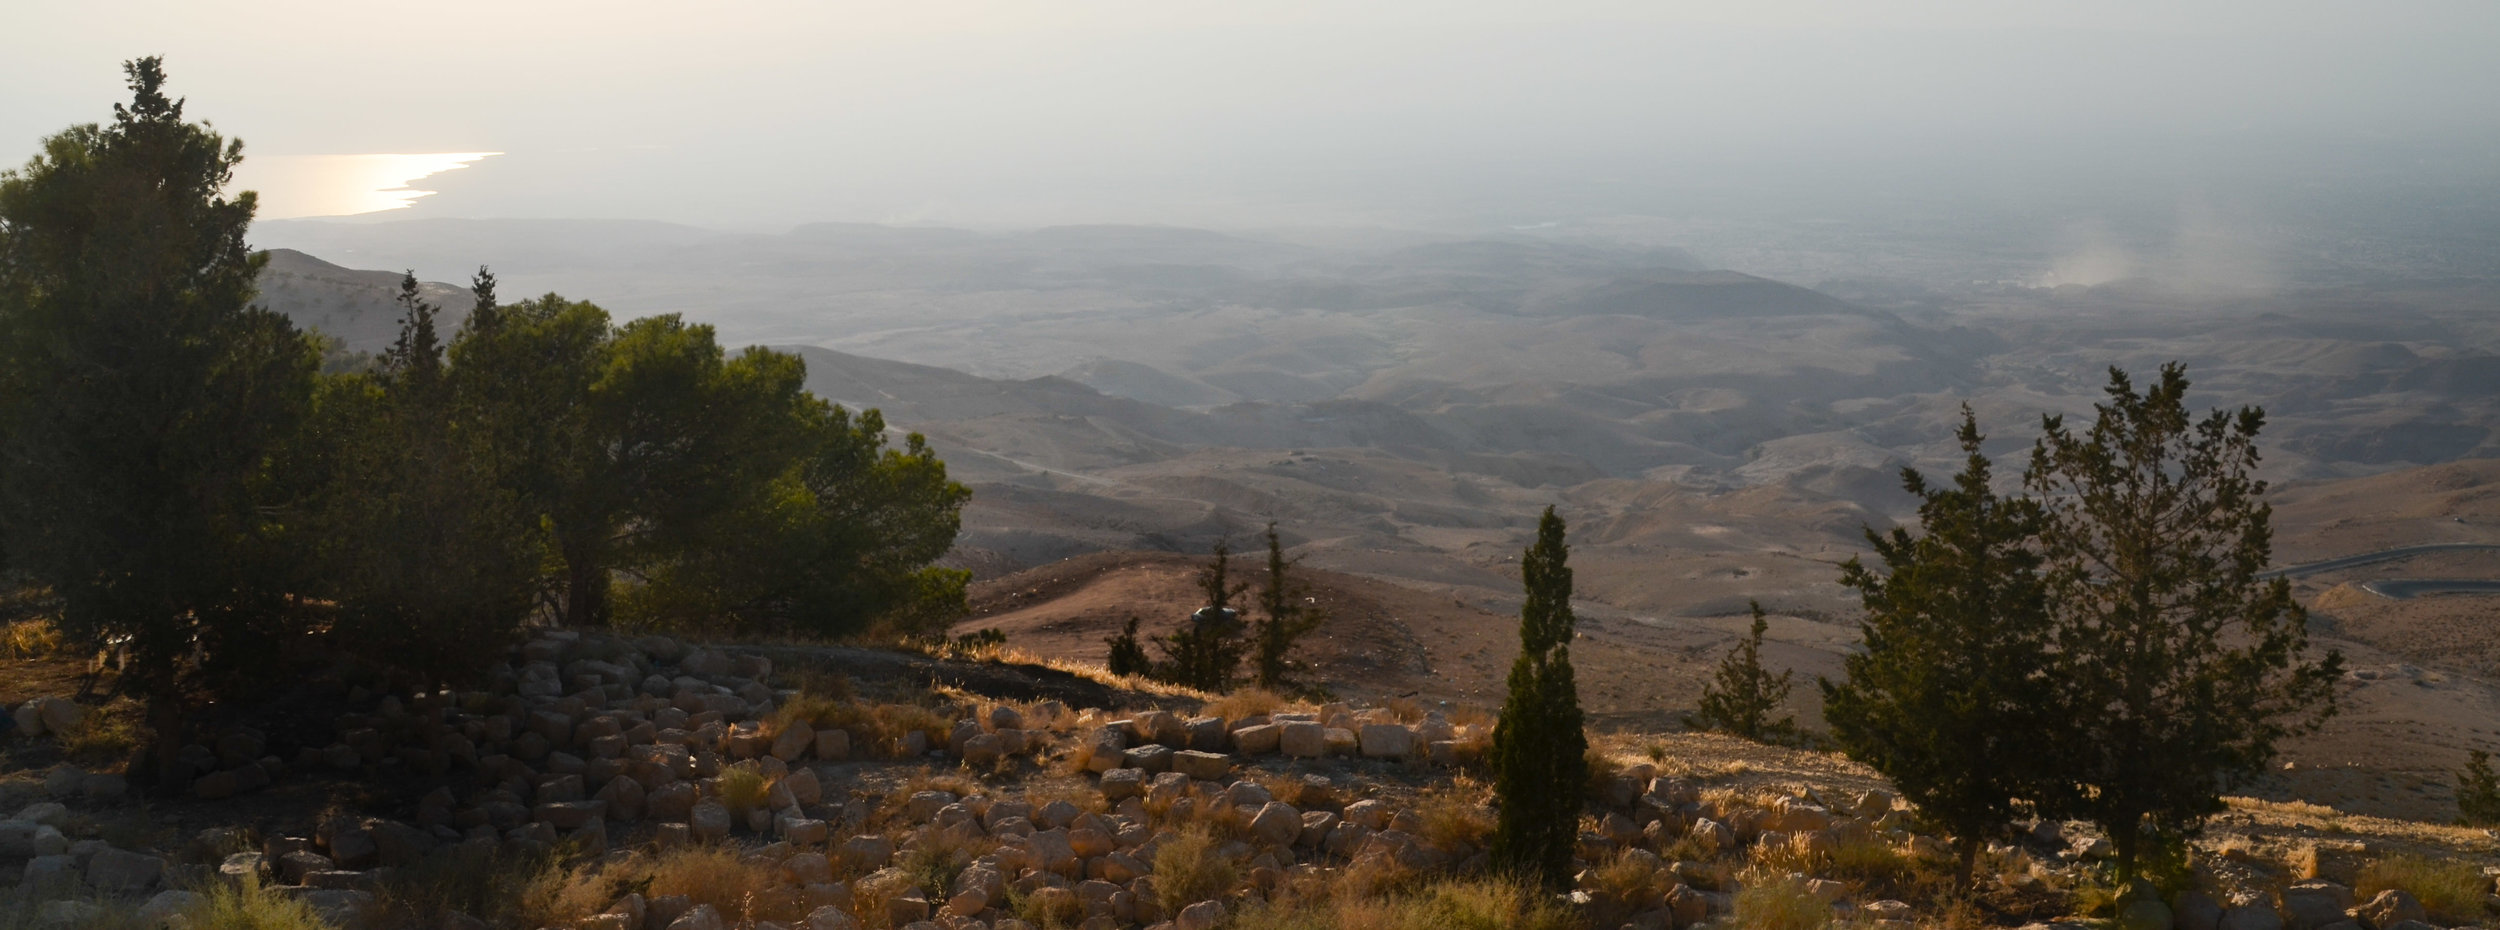 Moses' view of the Promised Land from Mount Nebo, Jordan